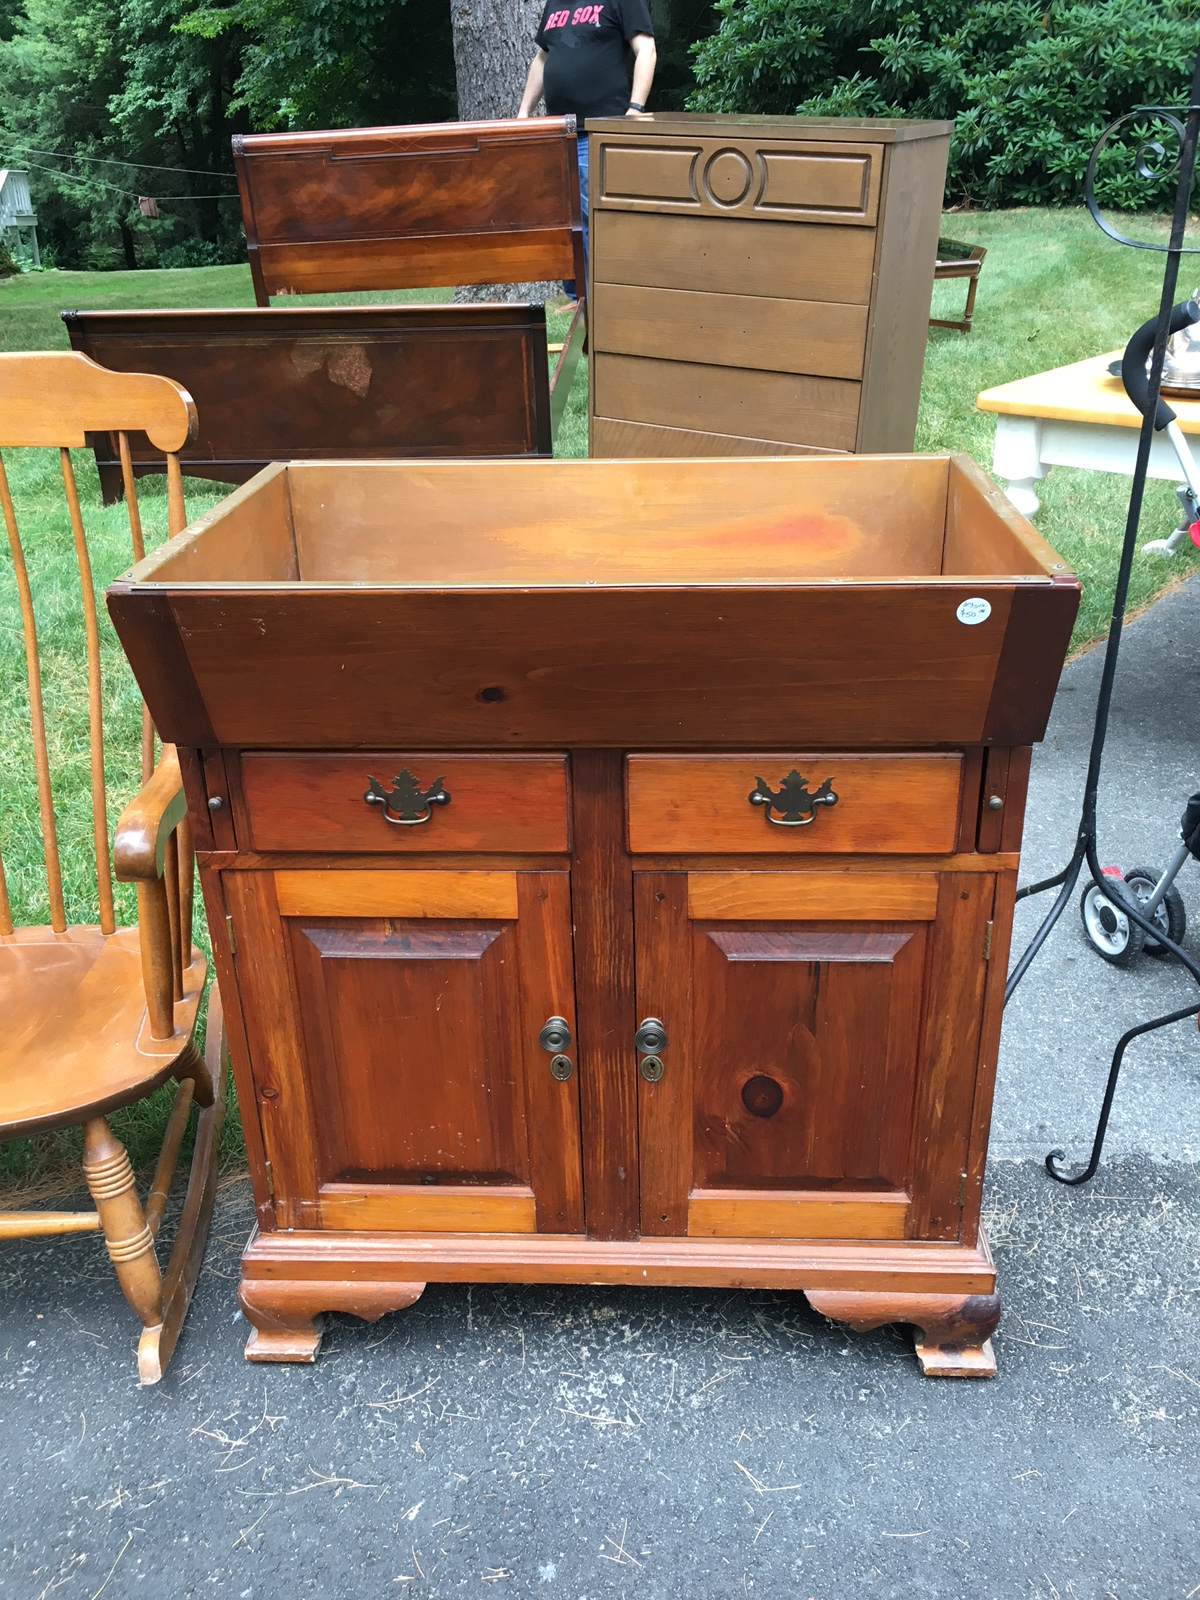 Antique Dry Sink For Sale Part - 14: copper lined dry sink - For Sale